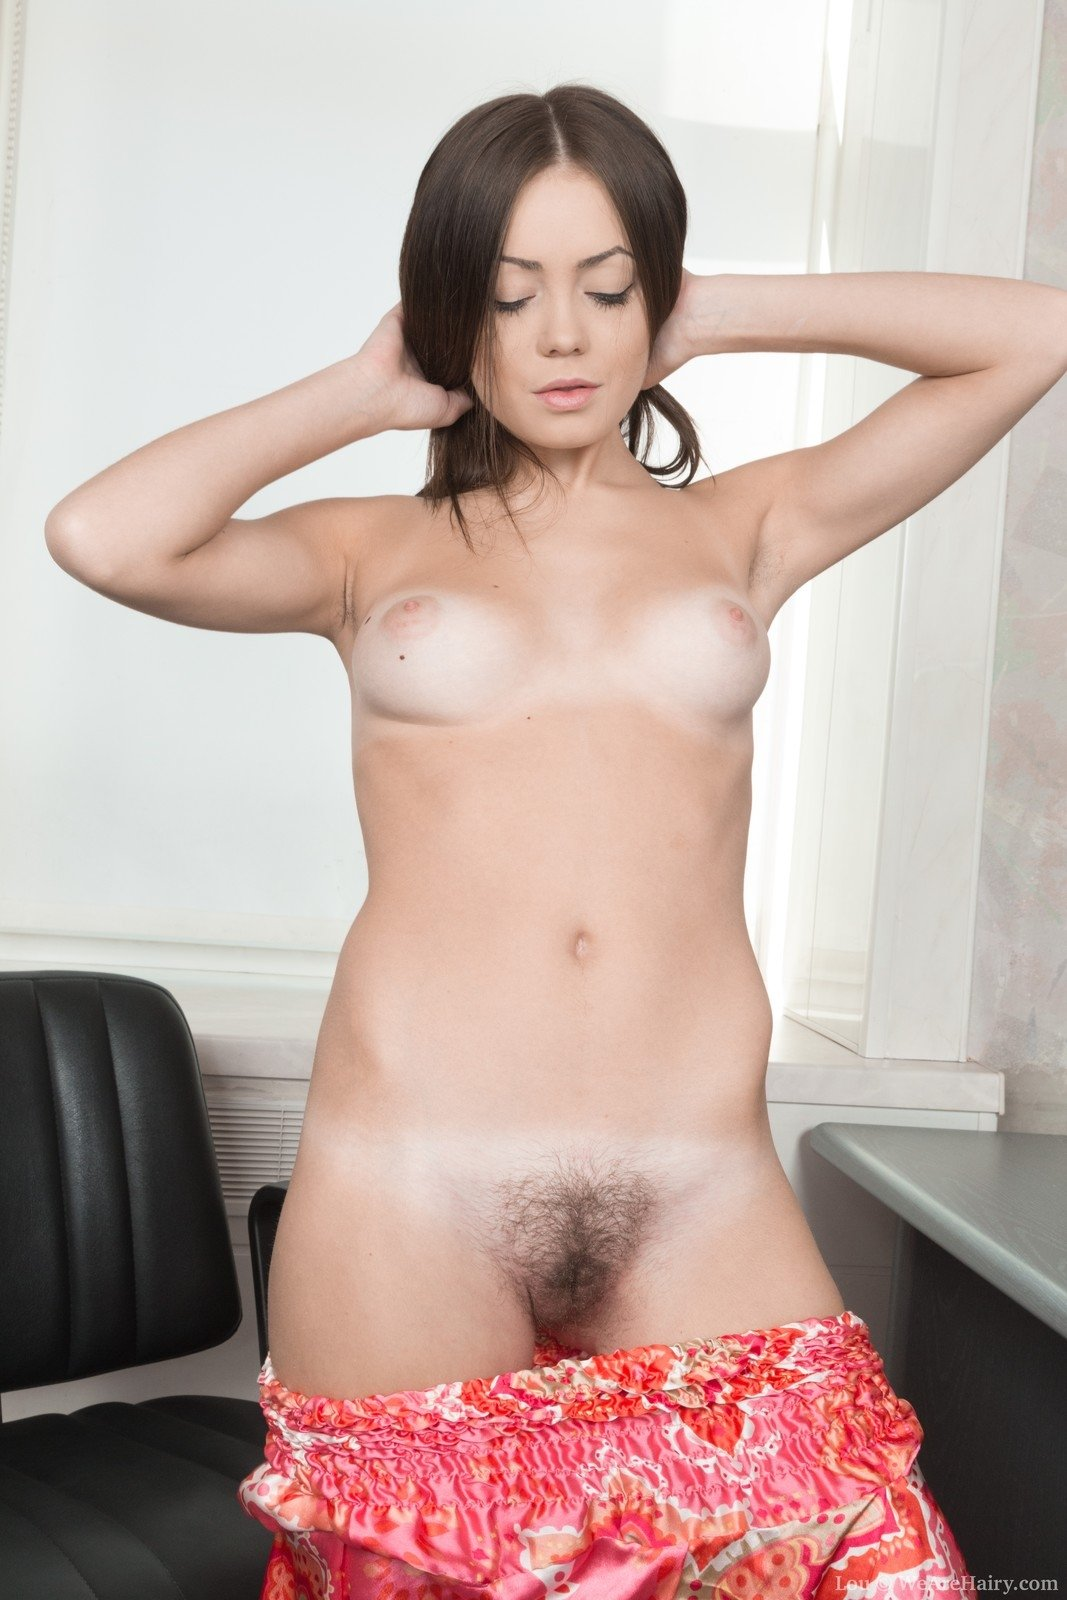 Bisexual wives homepages Teen modeling classes in la public figure xxx